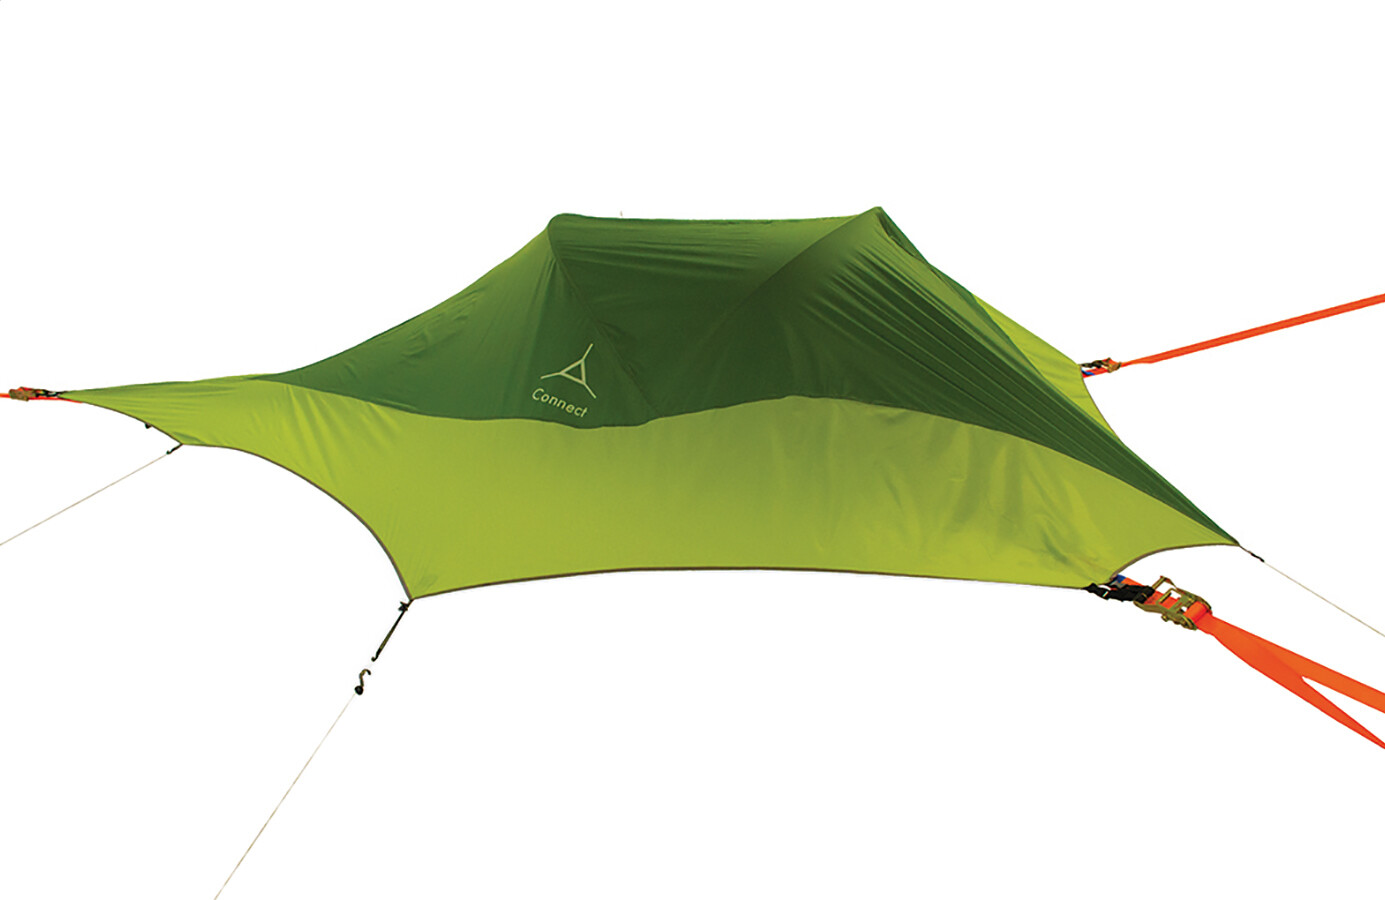 Tentsile Connect Telt, rain forest green (2019) | Misc. Transportation and Storage